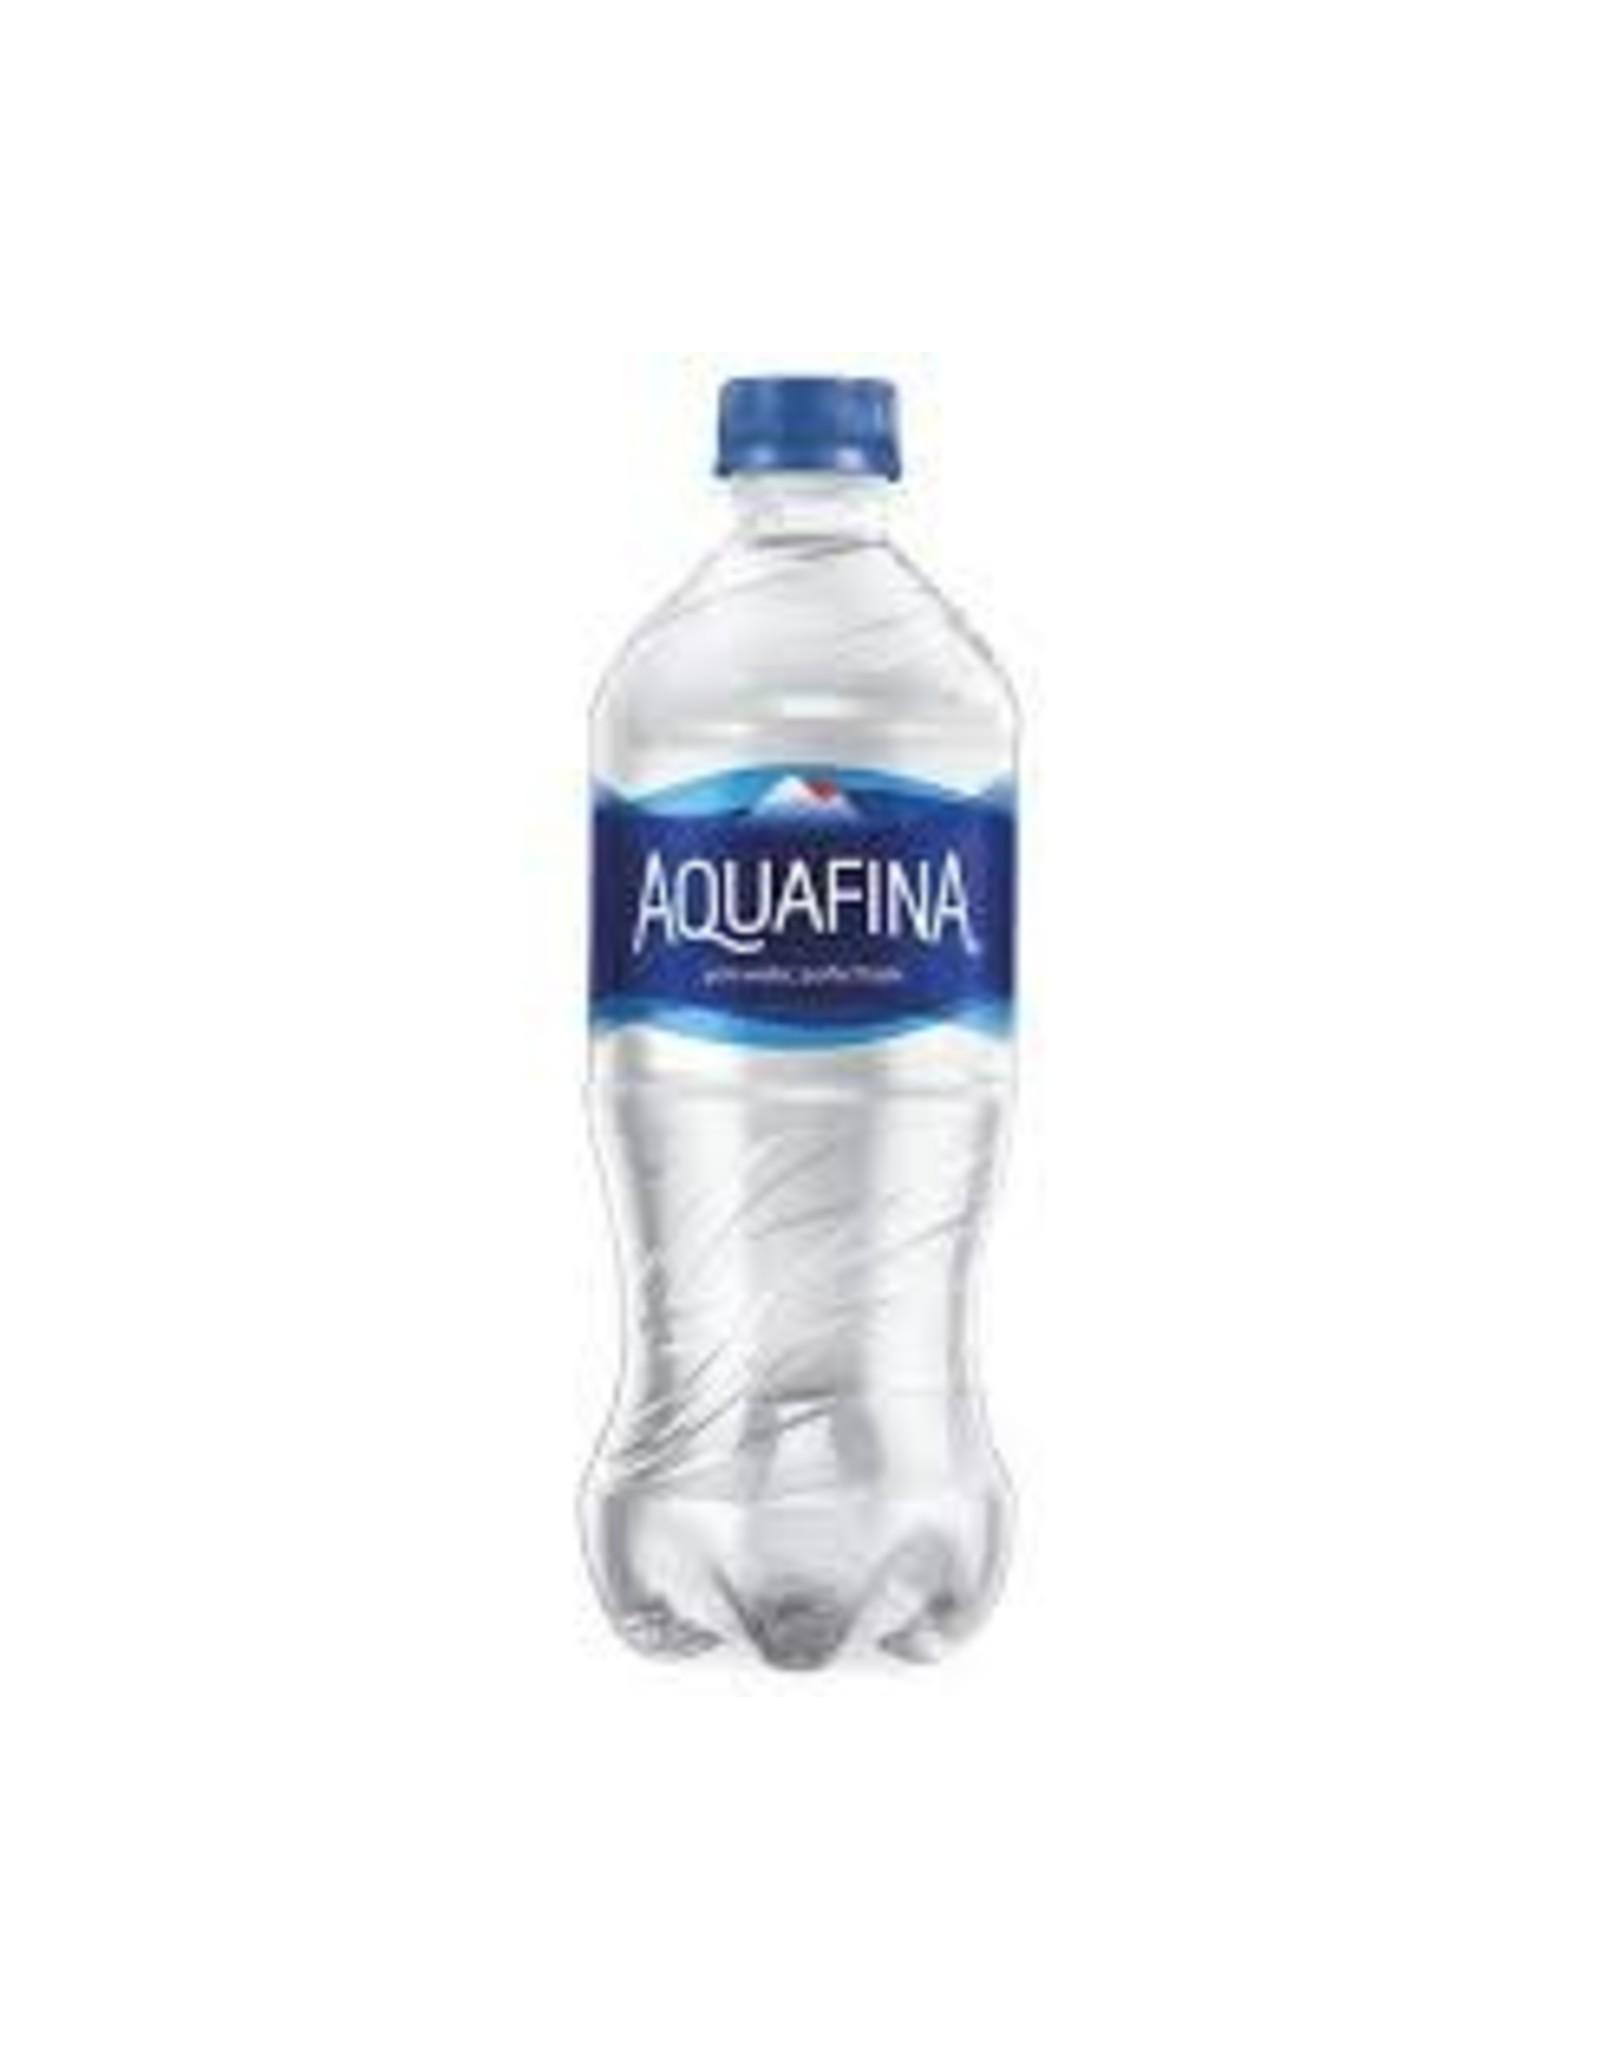 Aquafina Water 20oz Bottle